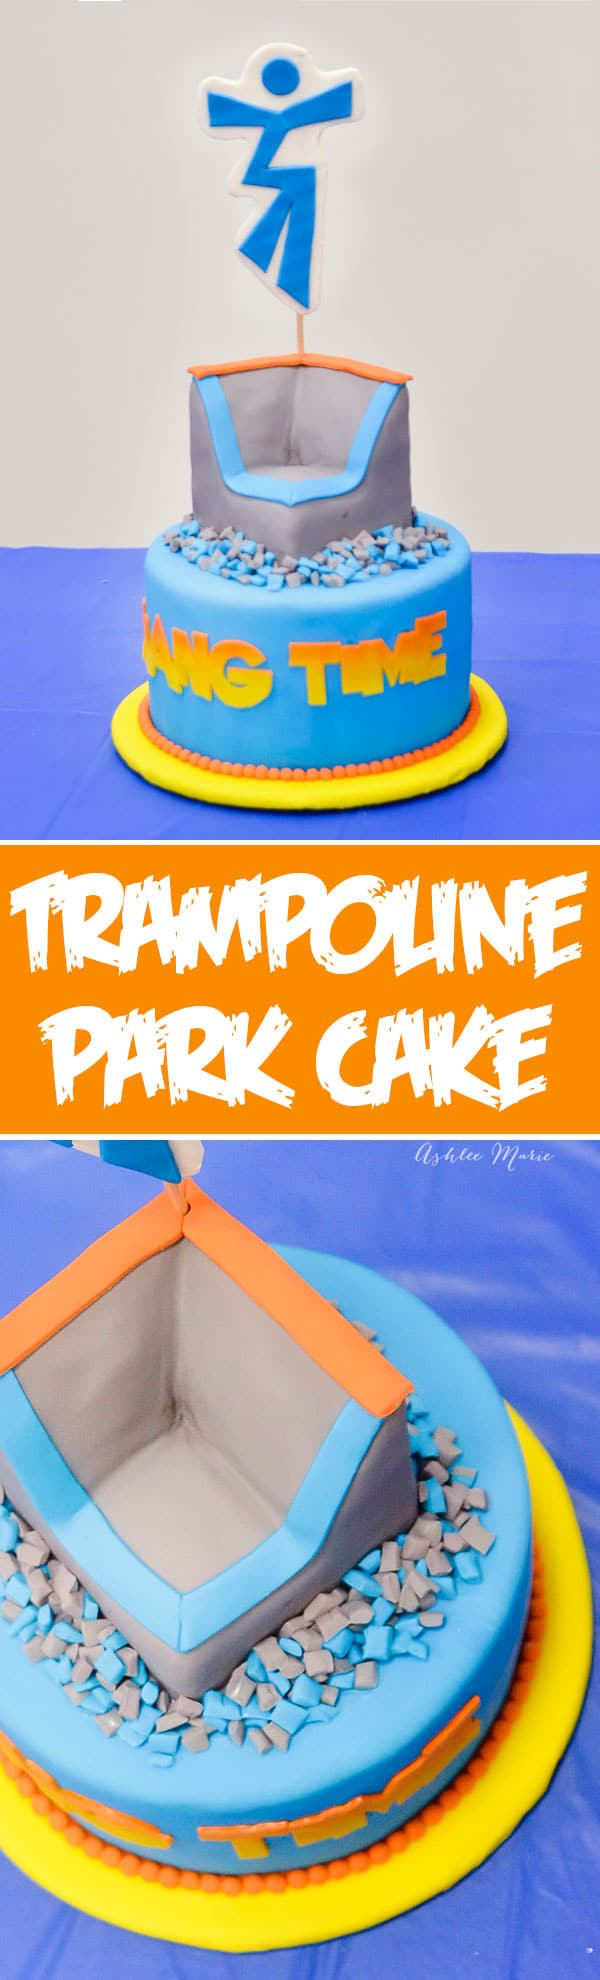 a hand carved cake for a local trampoline warehouse